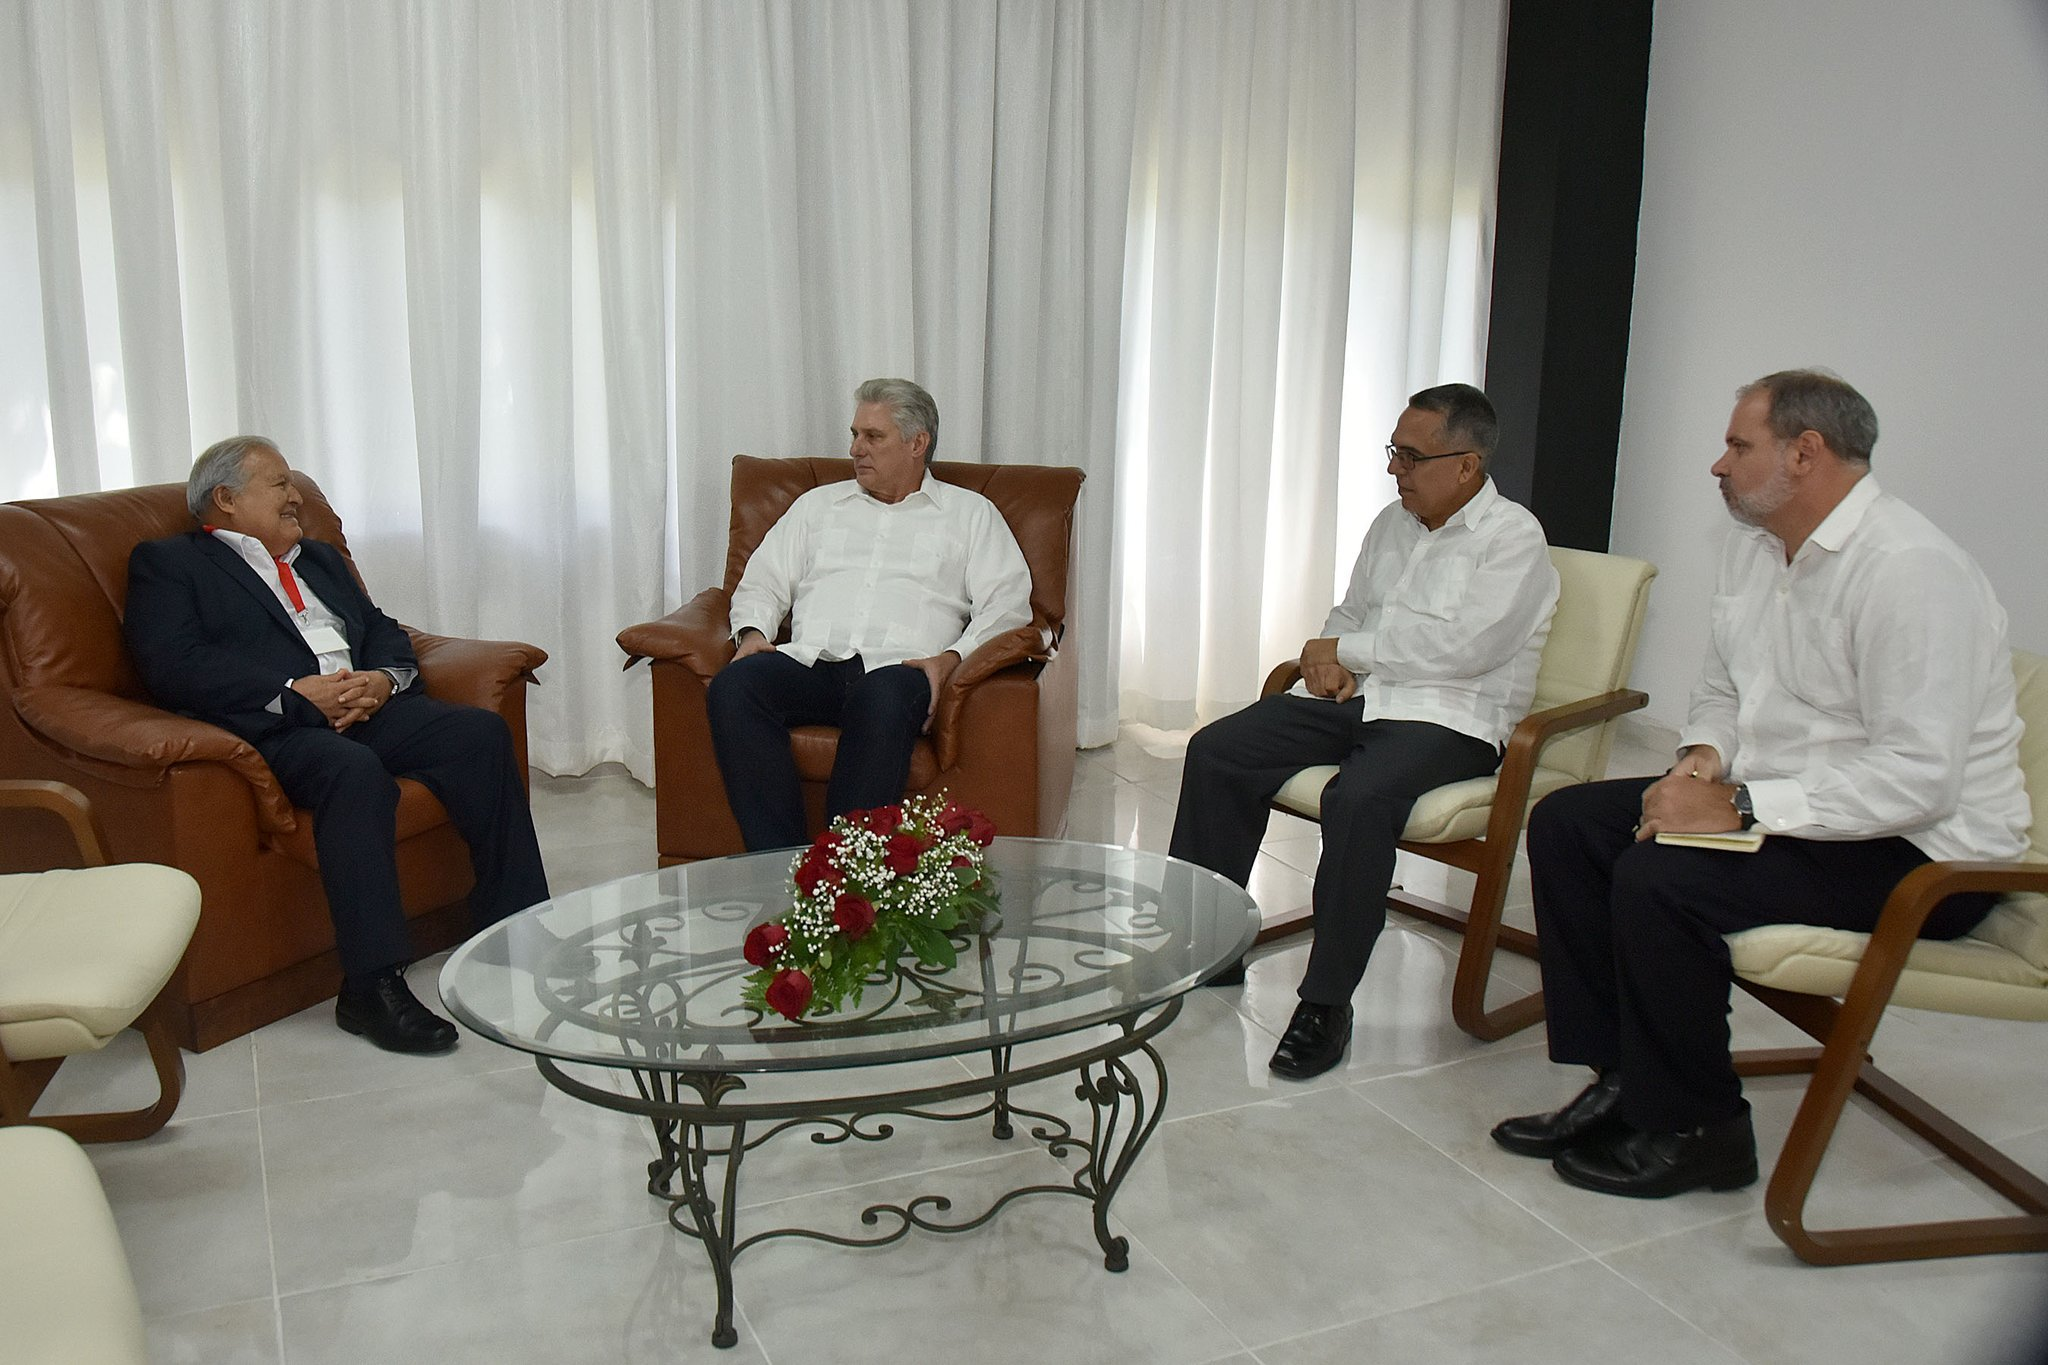 Díaz Canel receives participants in Anti-imperialist Encounter